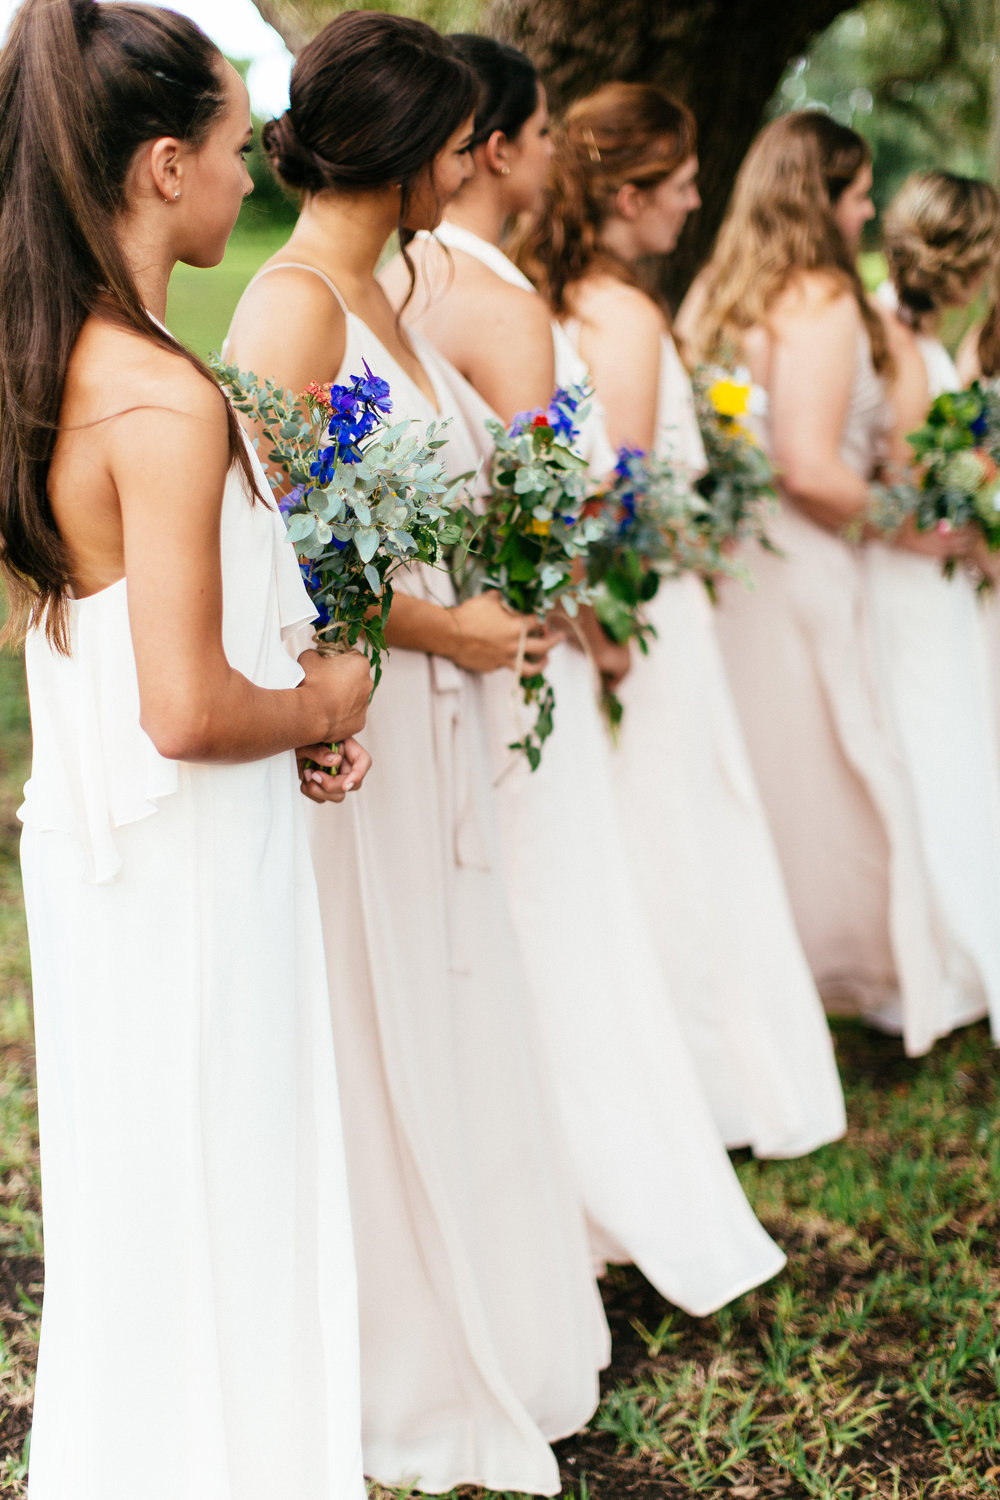 christina-karst-photography-ivory-and-beau-bridal-boutique-sarah-seven-lafayette-boho-bride-boho-bridal-boutique-indie-bridal-boutique-savannah-bridal-boutique-savannah-wedding-dresses-savannah-bridal-gowns-13.jpg